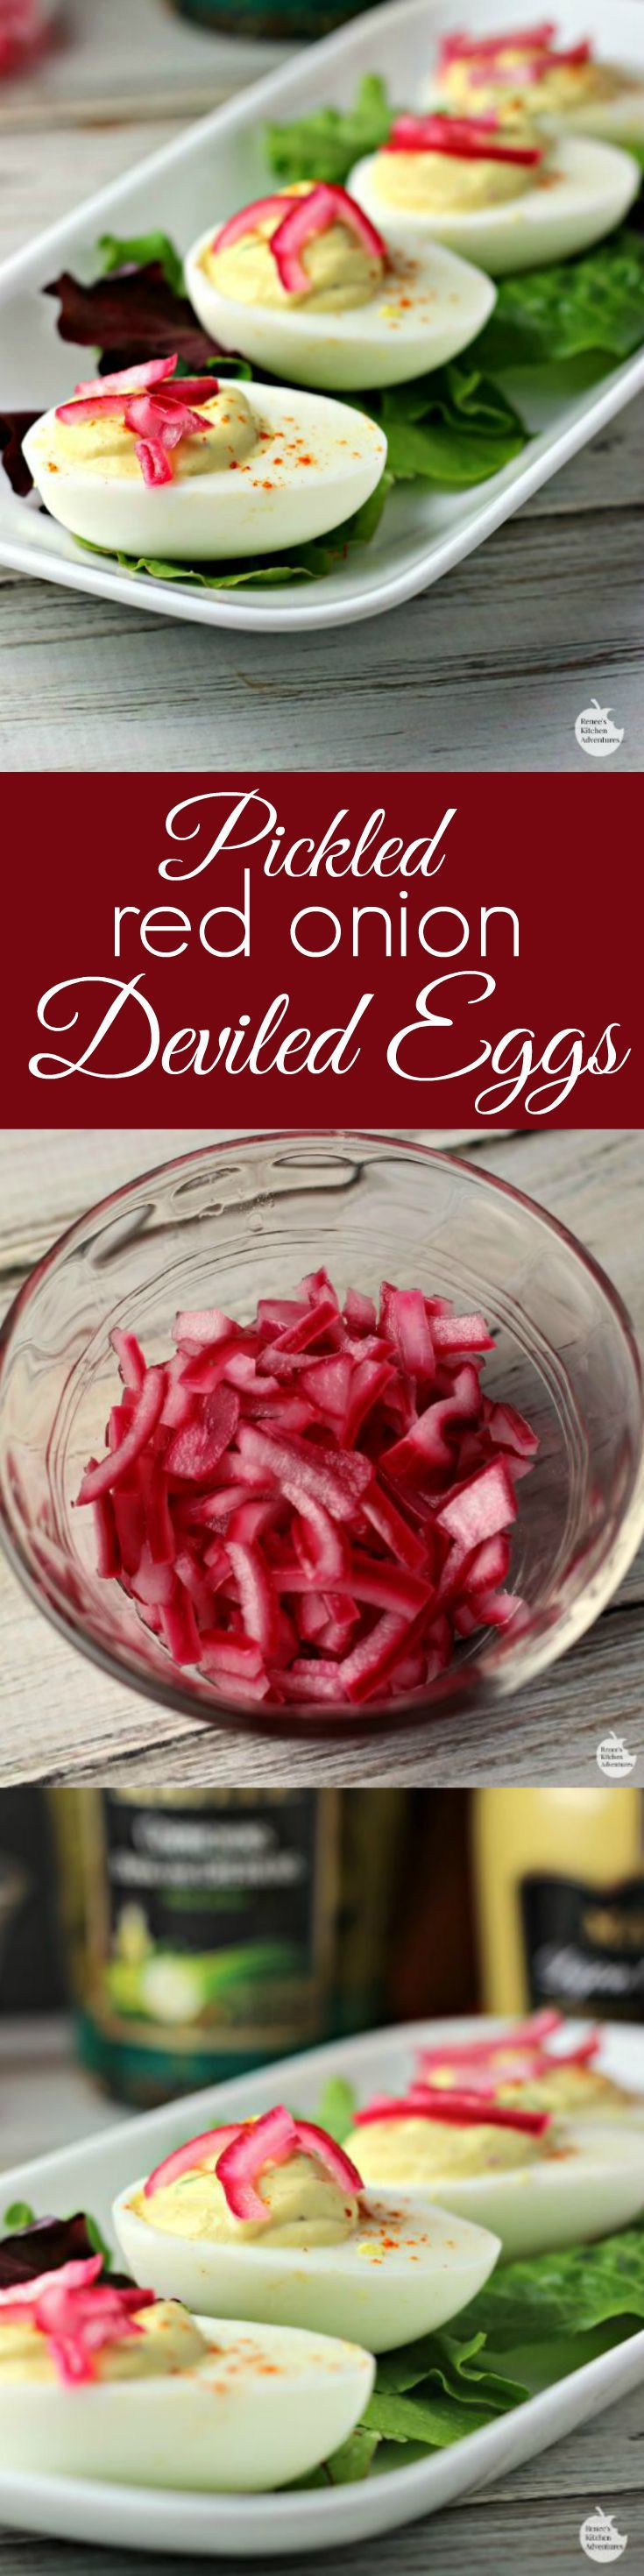 Pickled Red Onion Deviled Eggs   by Renee's Kitchen Adventures - Delicious recipe for a great anytime snack or appetizer! Crunchy, sweet, and savory all in one bite!